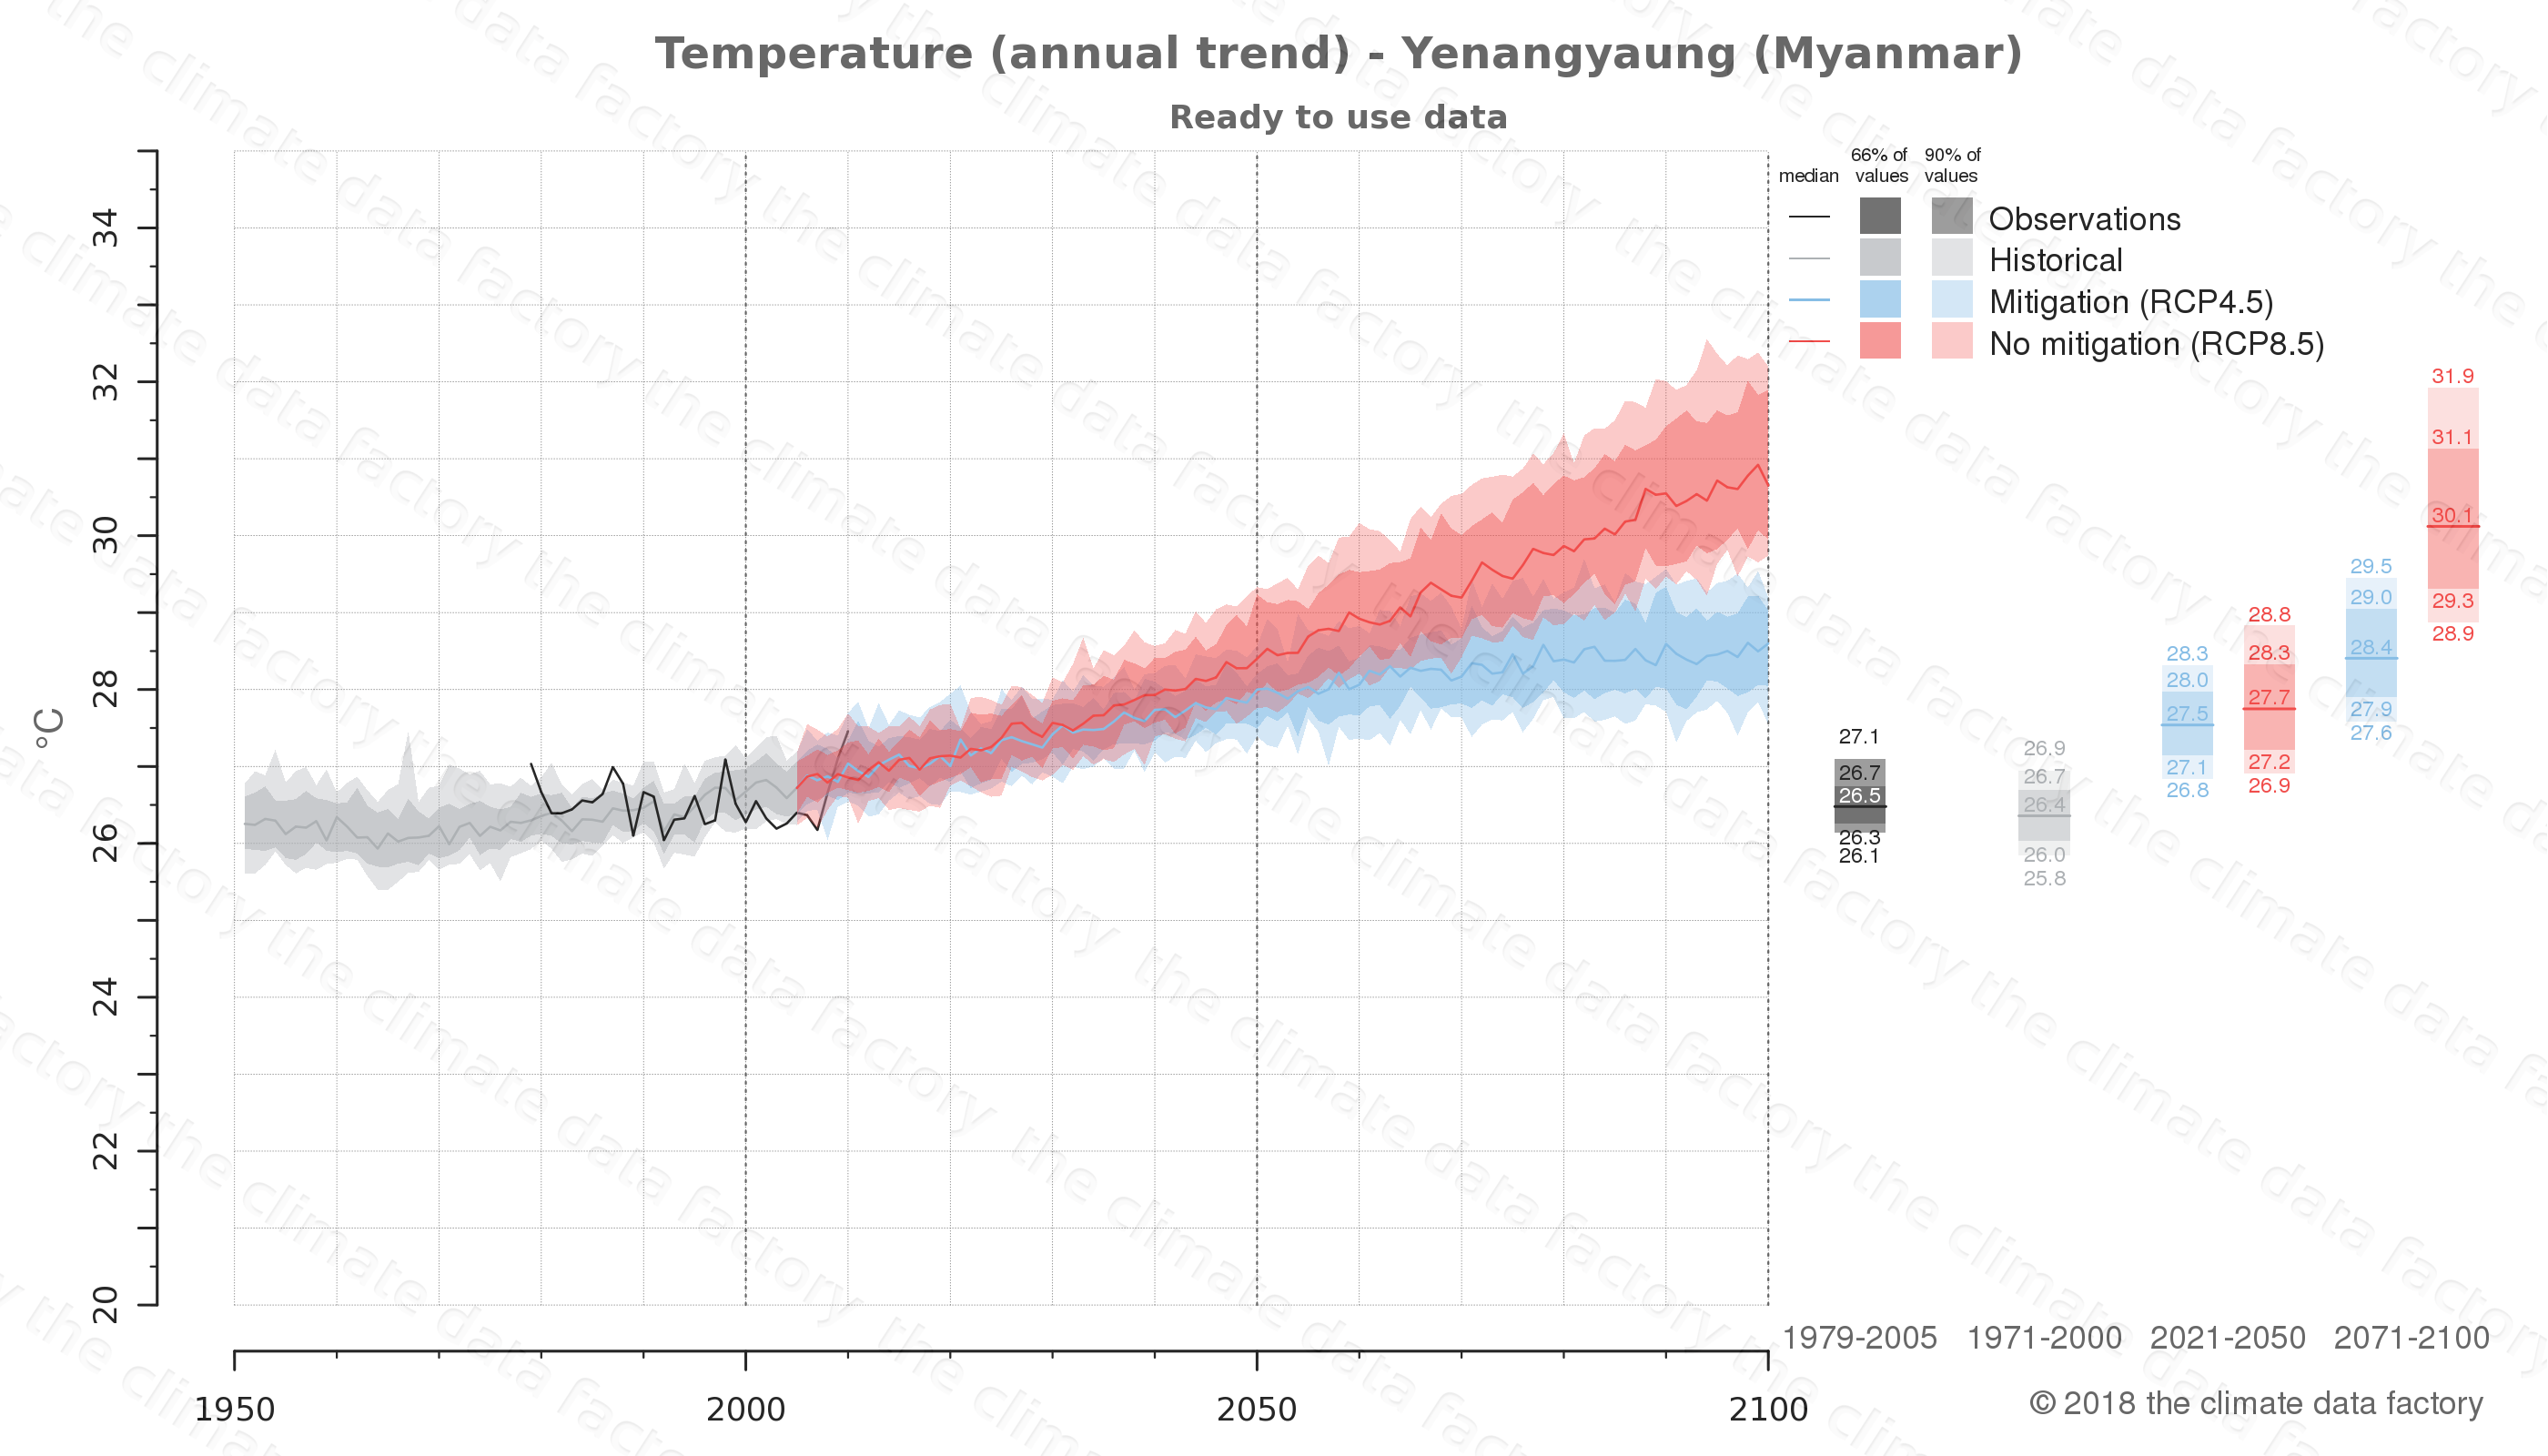 climate change data policy adaptation climate graph city data temperature yenangyaung myanmar